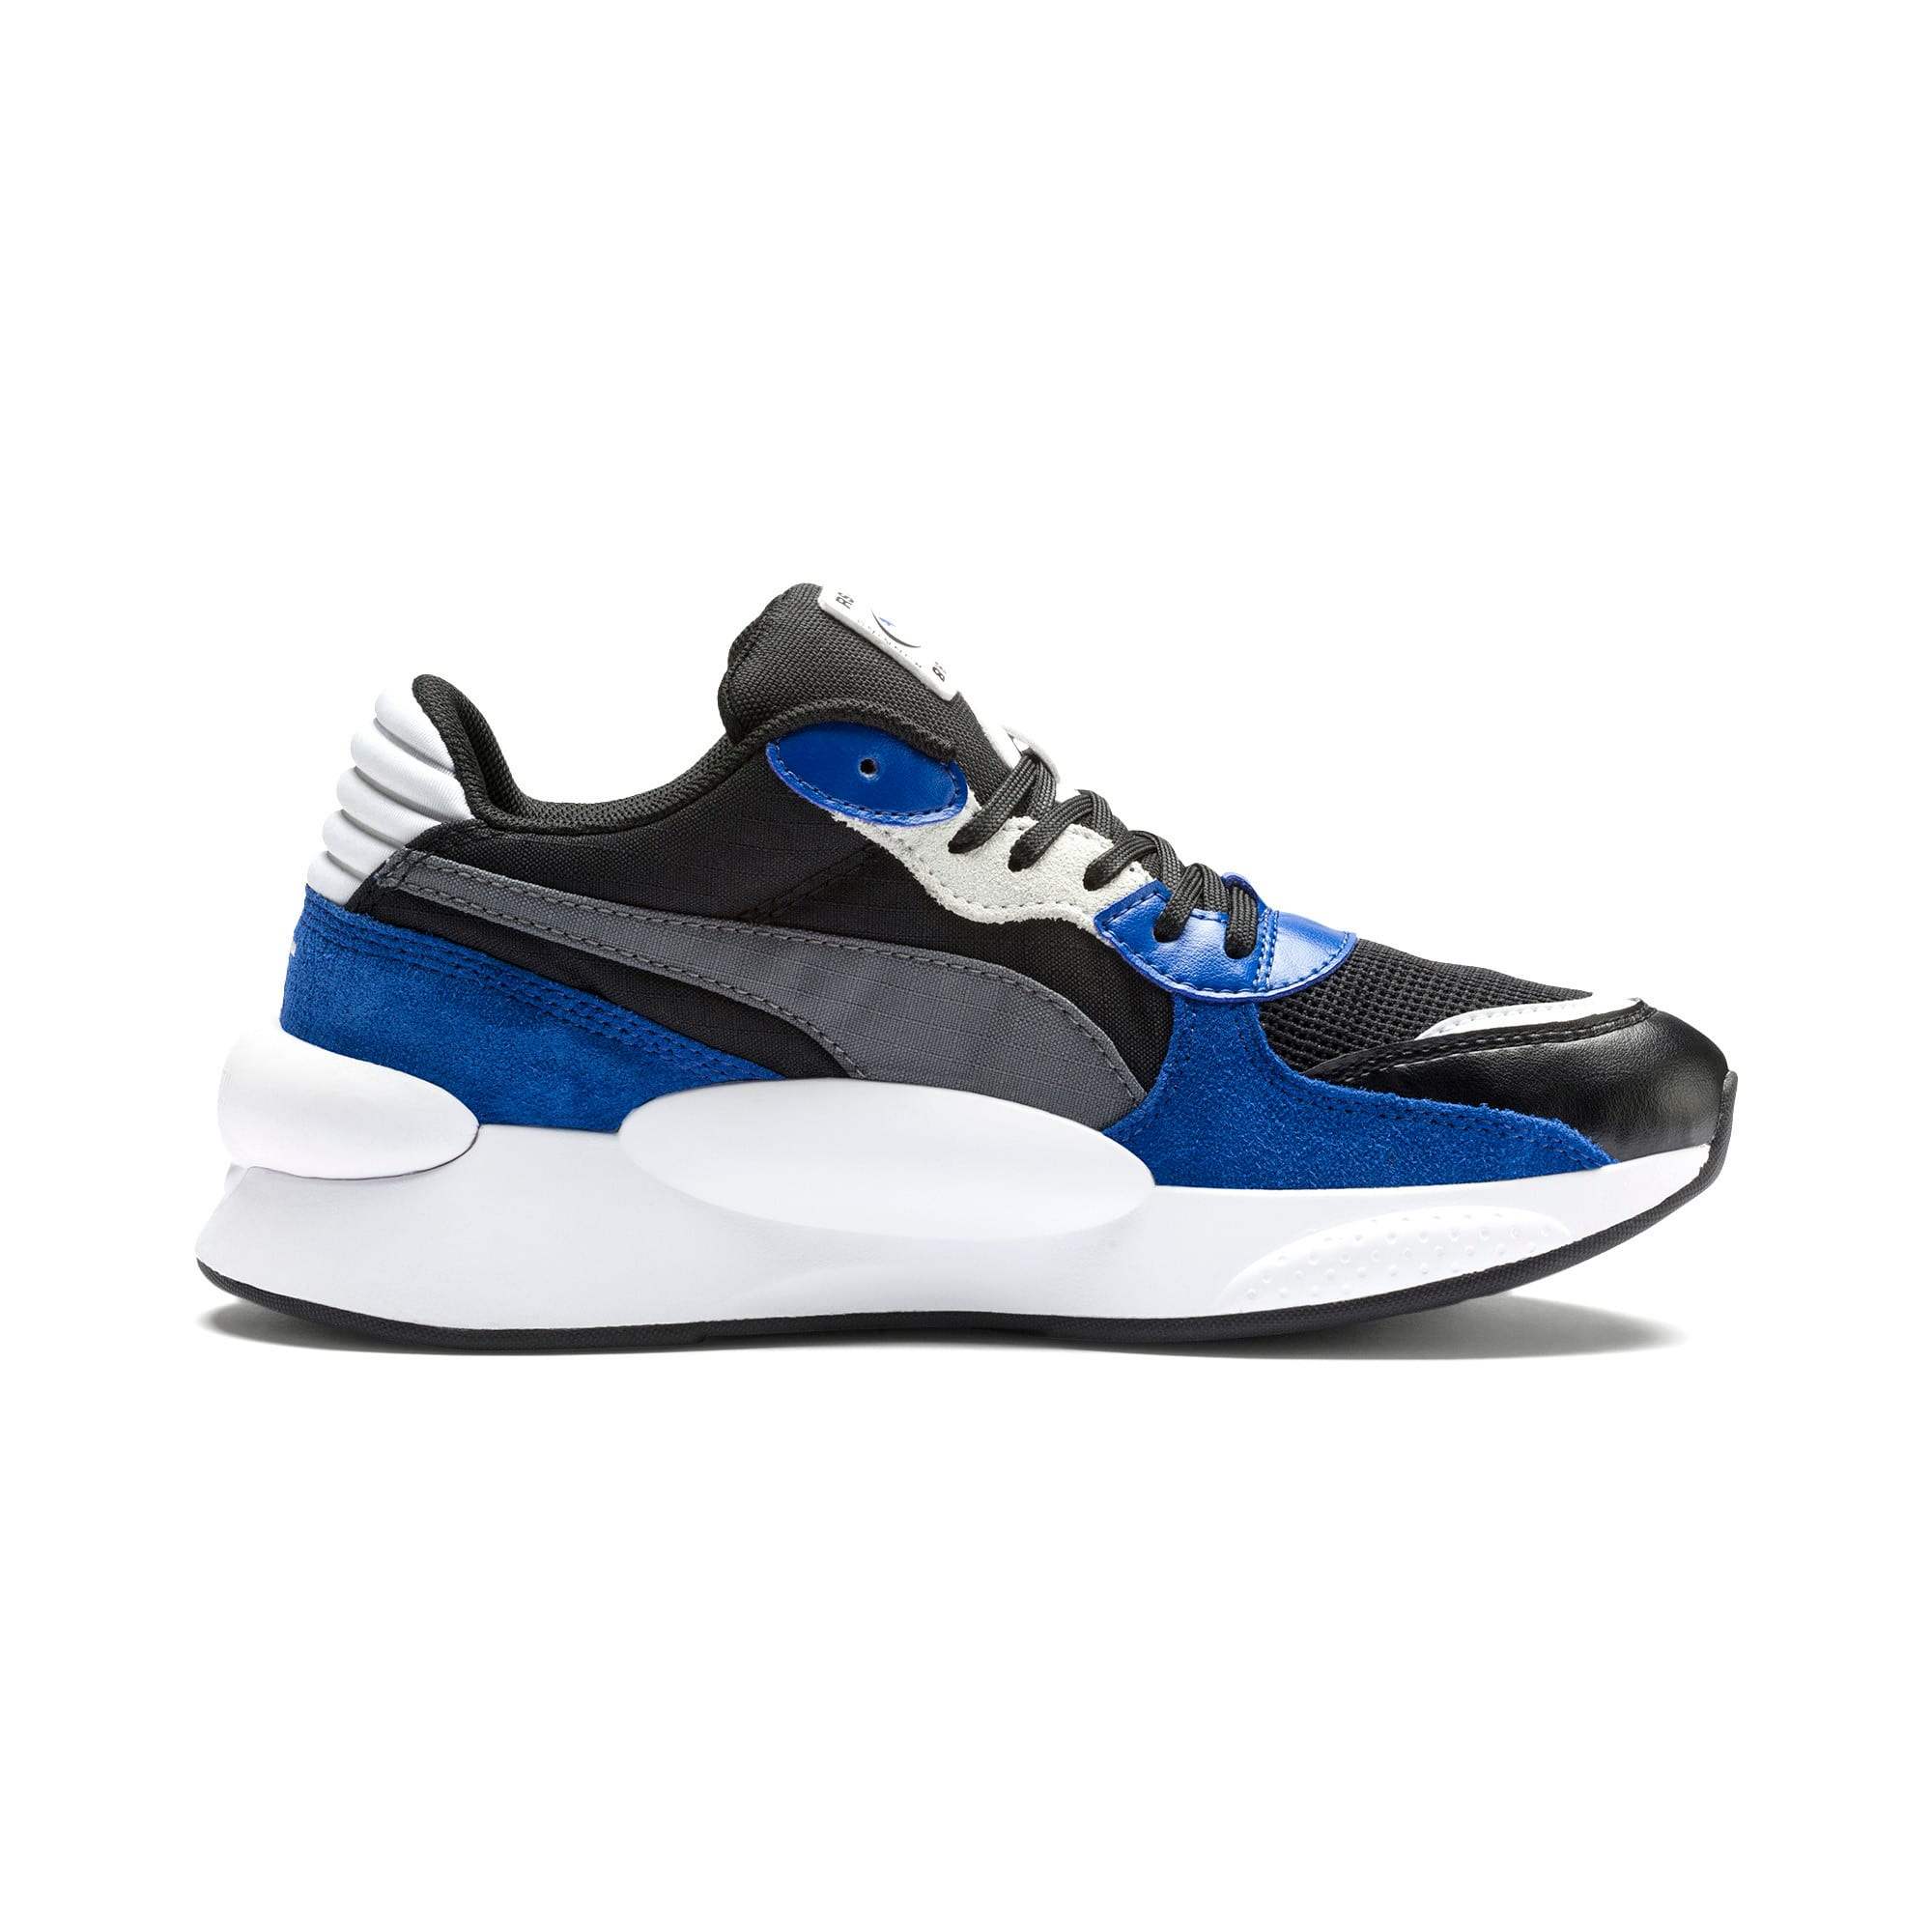 Thumbnail 5 of RS 9.8 Space Youth Trainers, Puma Black-Galaxy Blue, medium